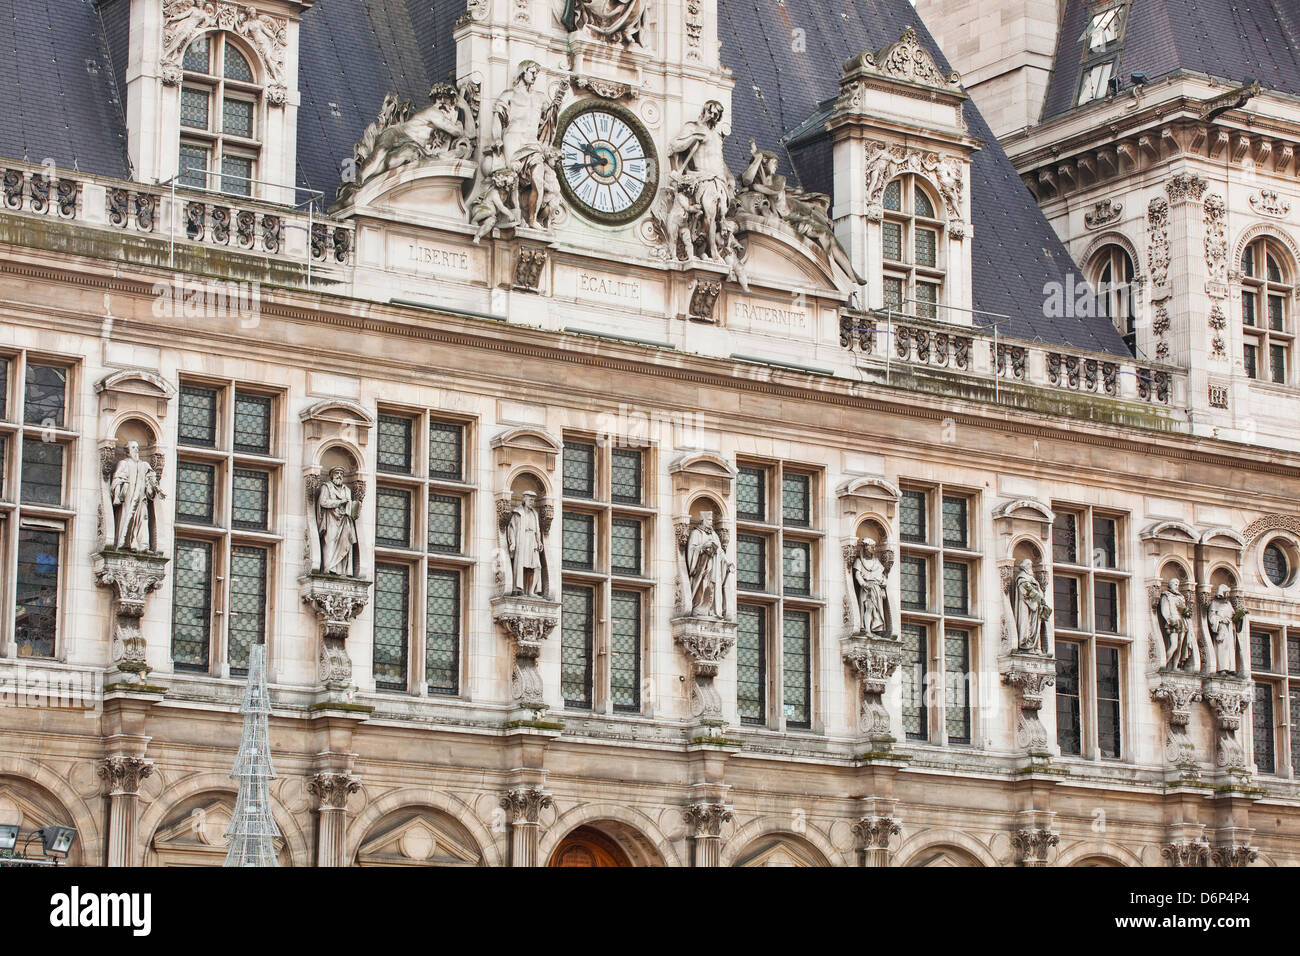 The Hotel de Ville (town hall) in central Paris, France, Europe - Stock Image